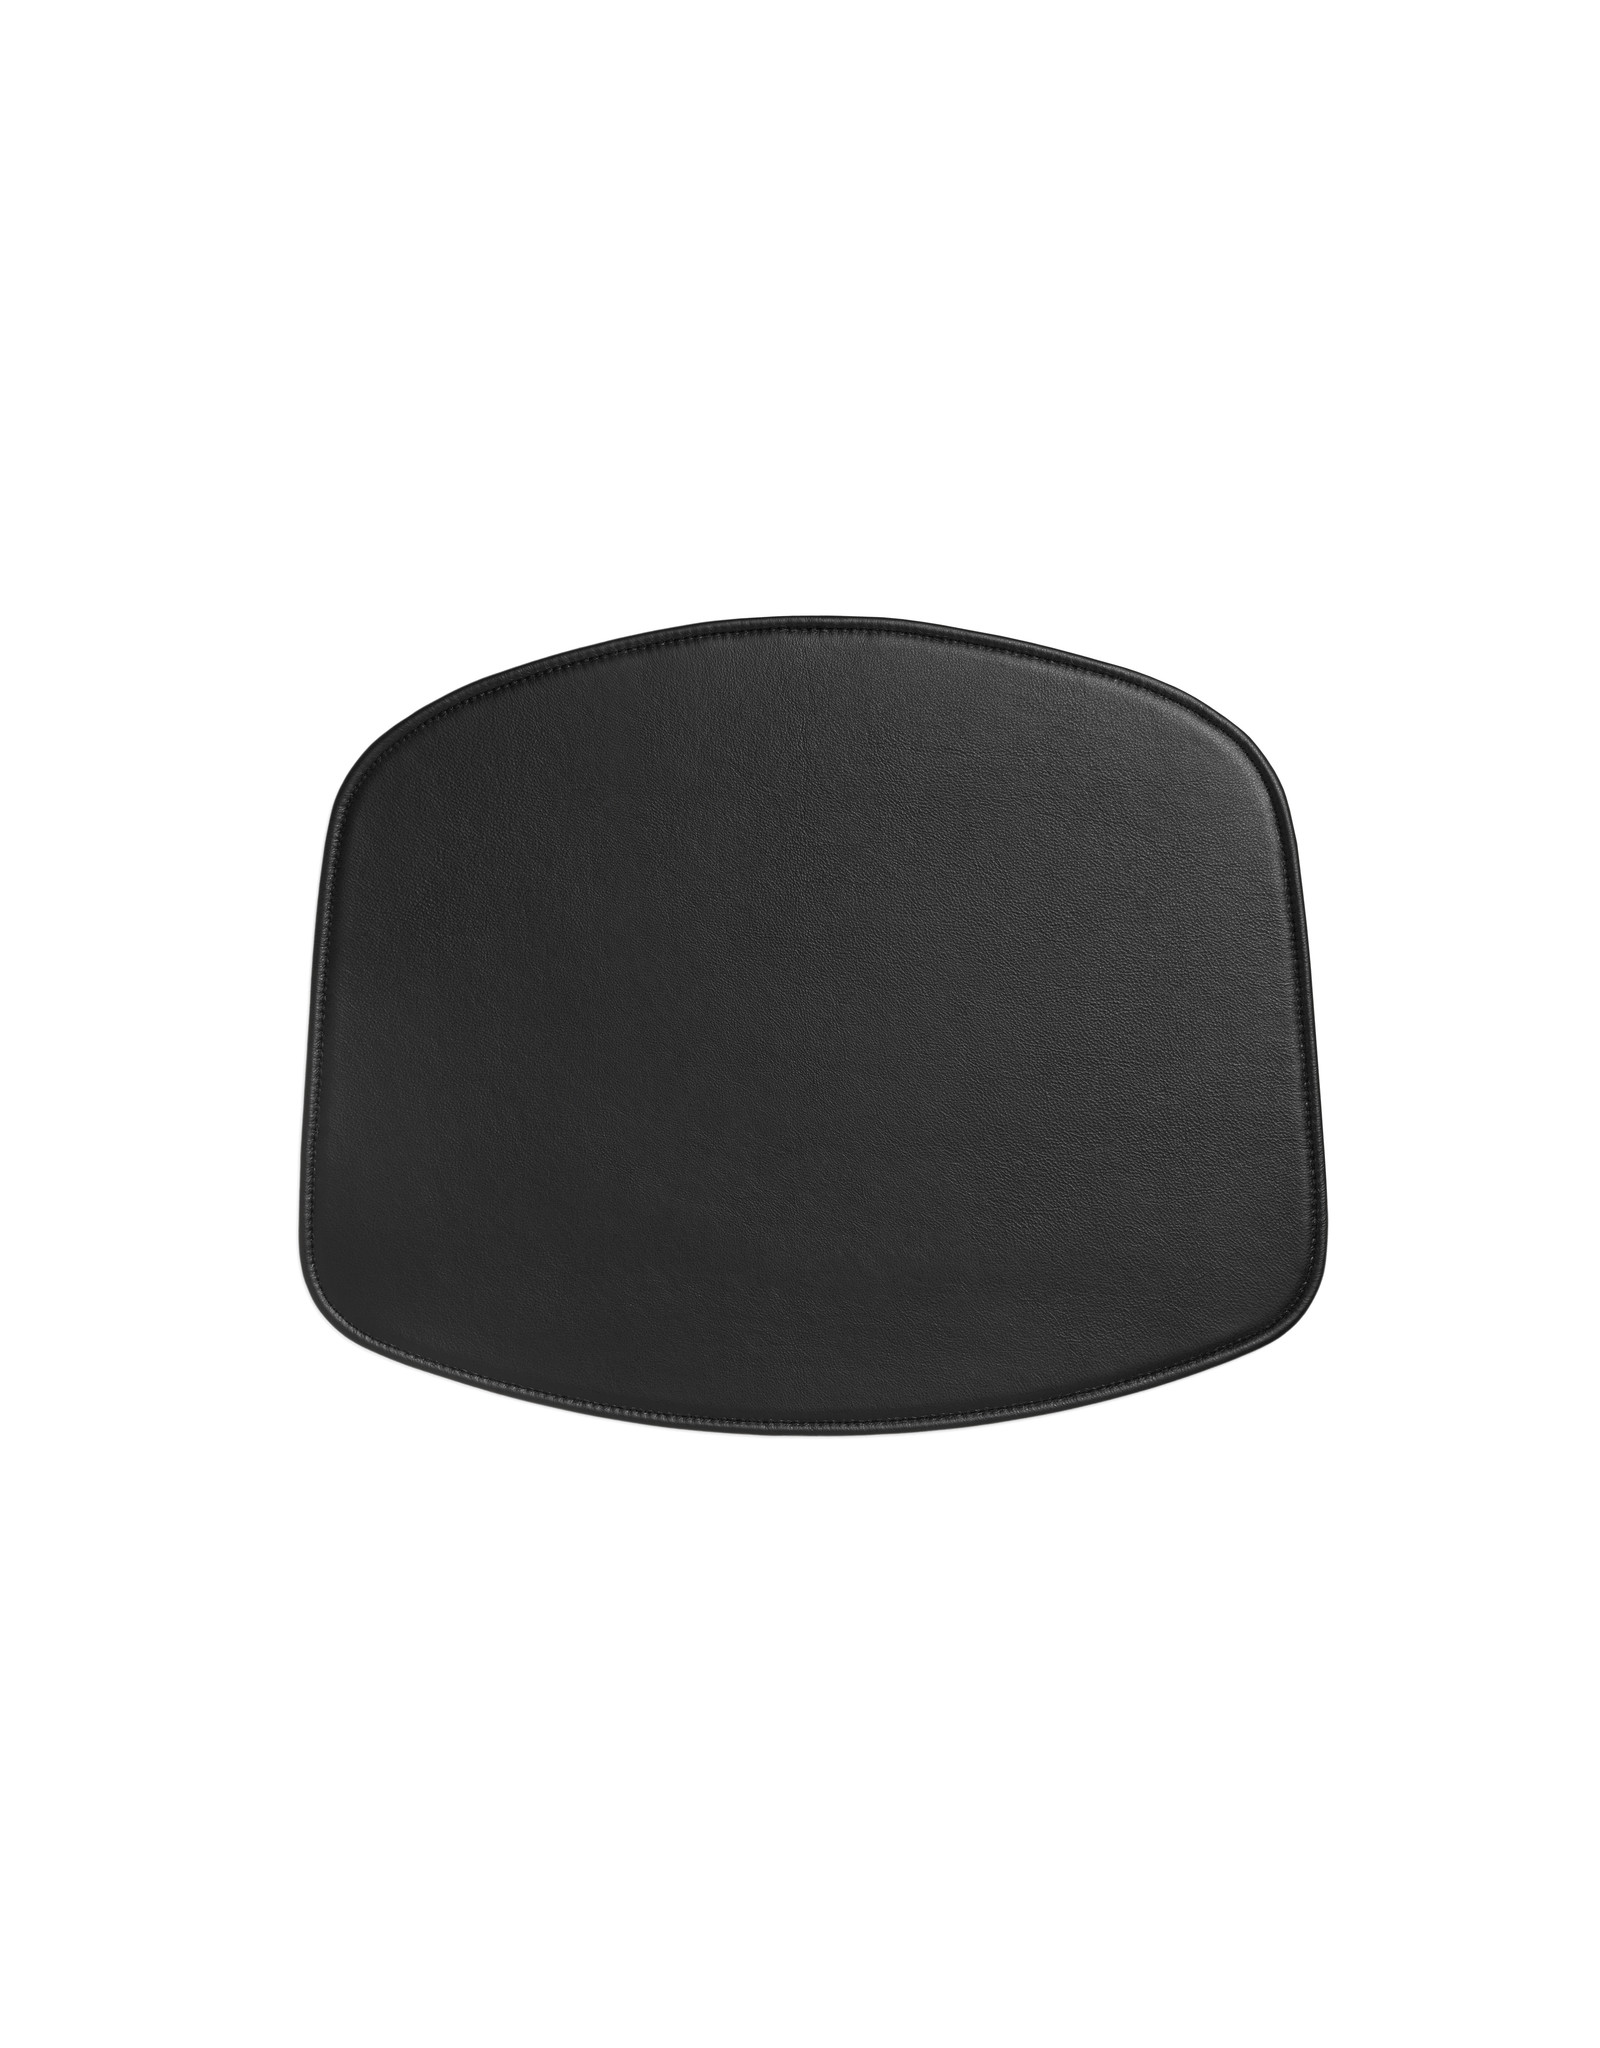 HAY SEAT PAD FOR AAC W. ARM LEATHER/BLACK